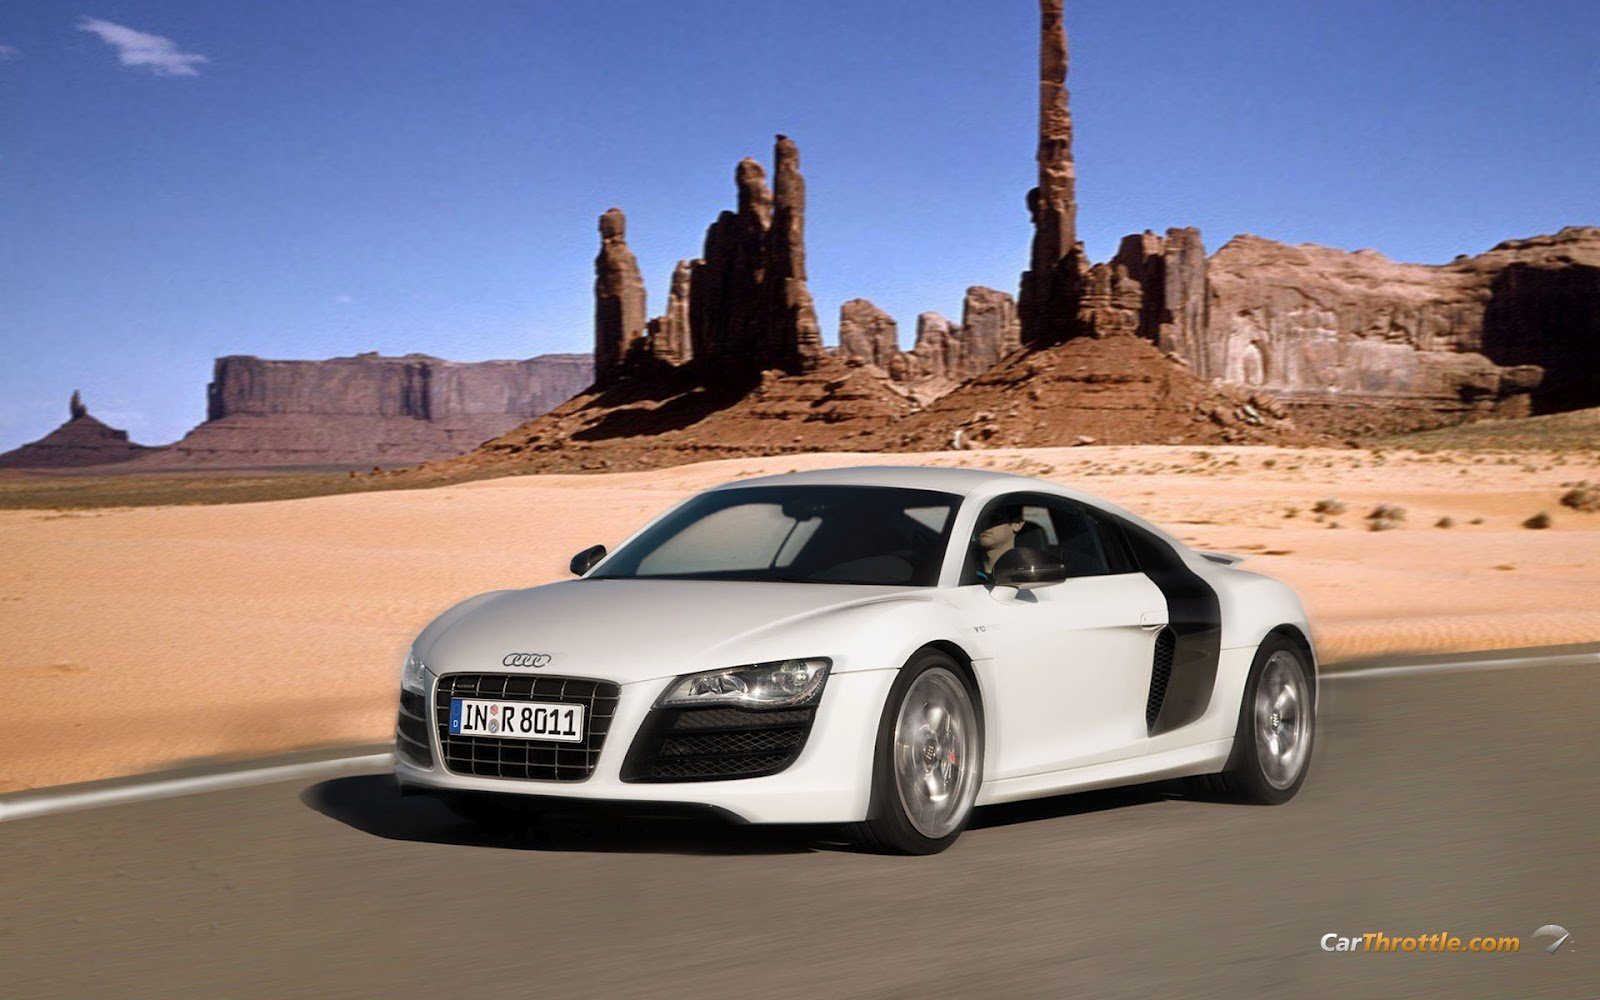 audi r8 v10 wallpaper Cool Car Wallpapers 1600x1000